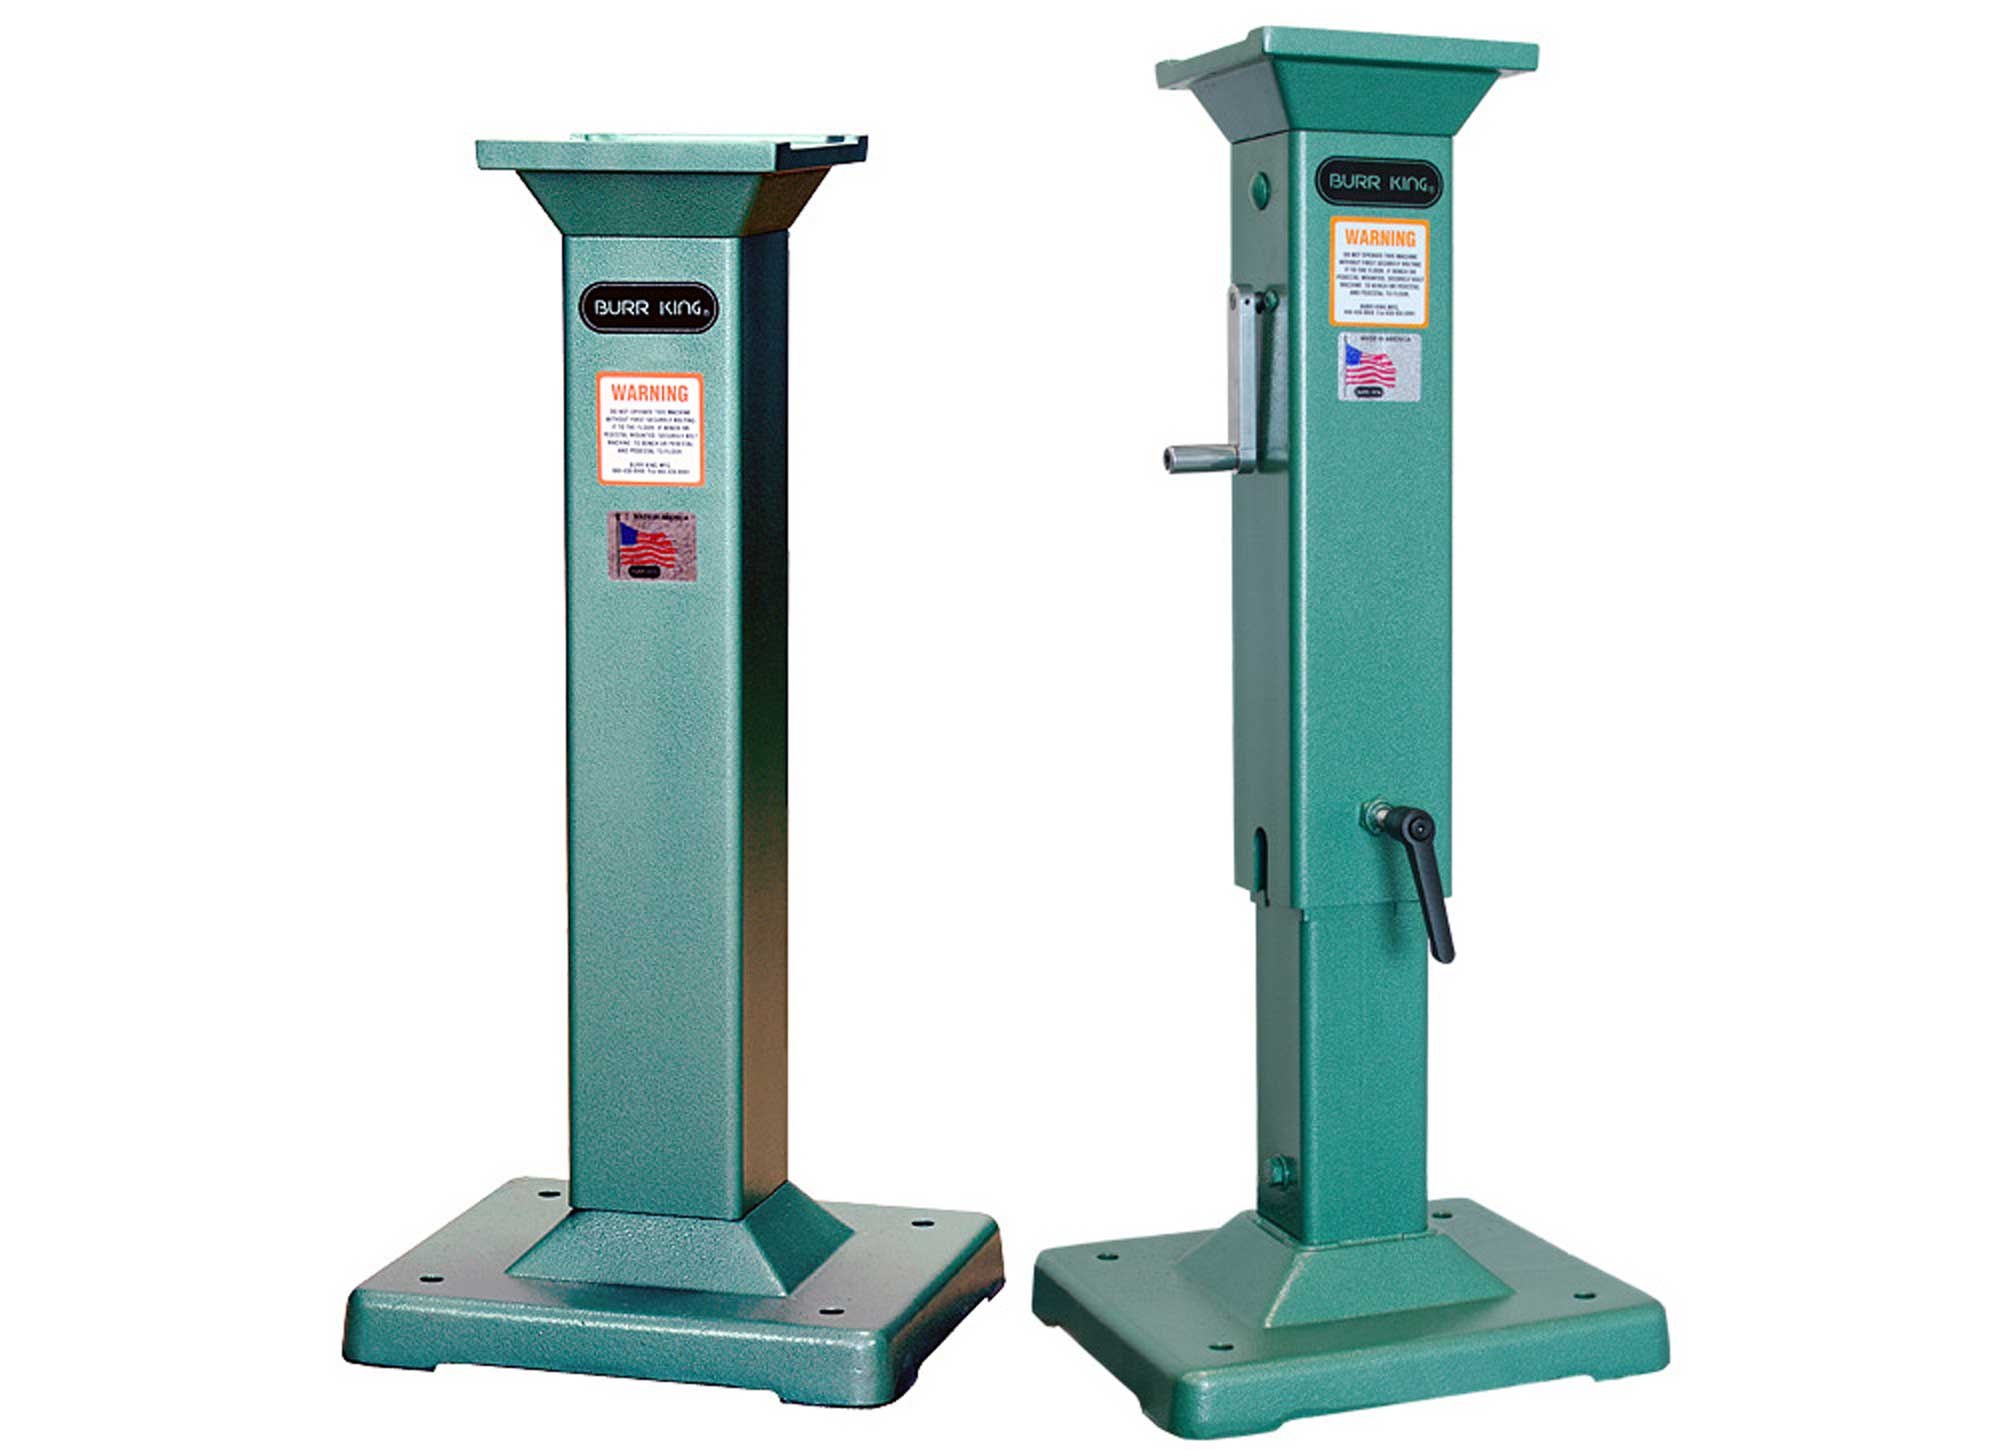 Optional fixed or adjustable height pedestal available.